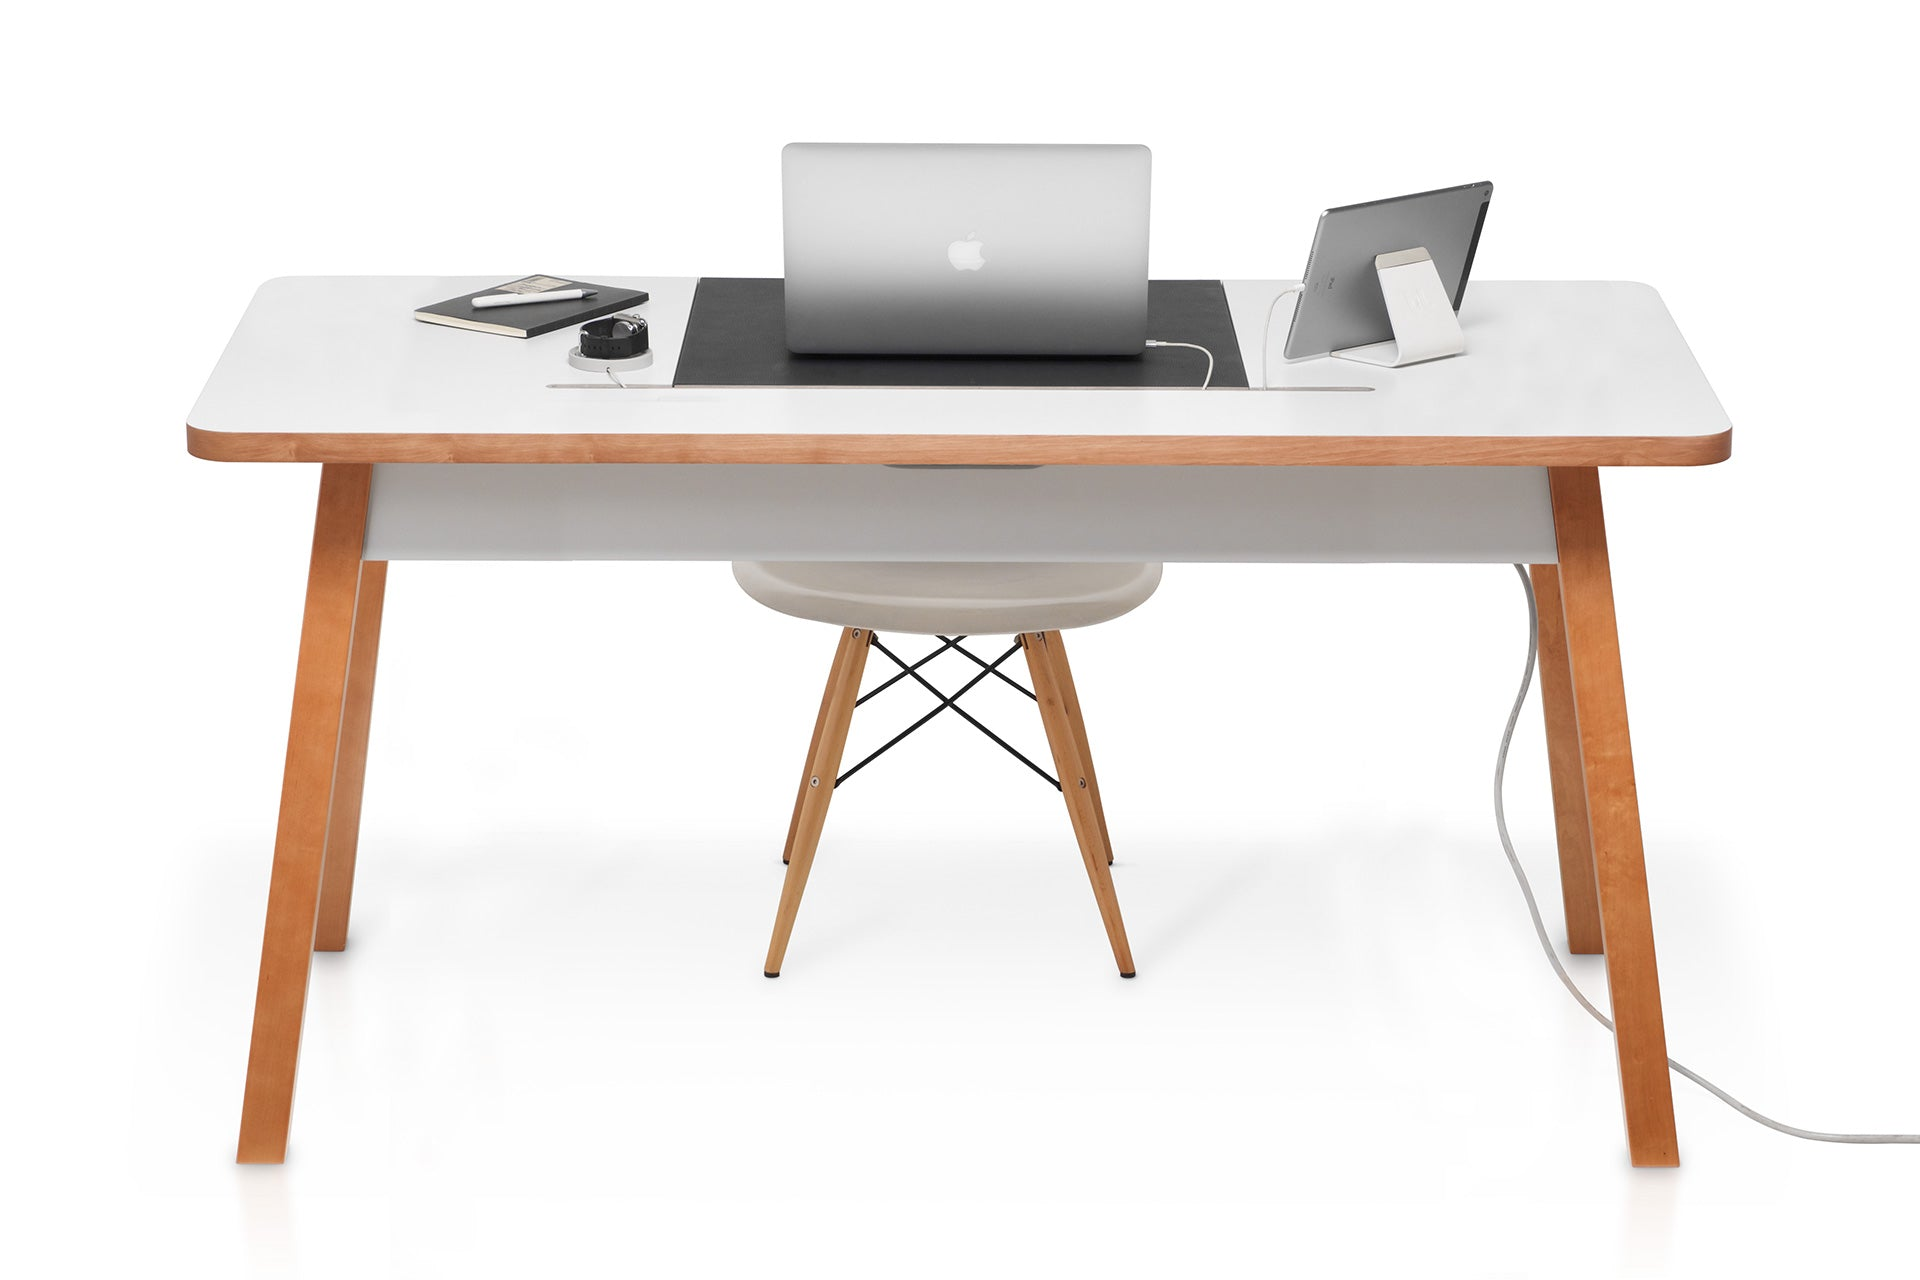 Image of StudioDesk on a white background